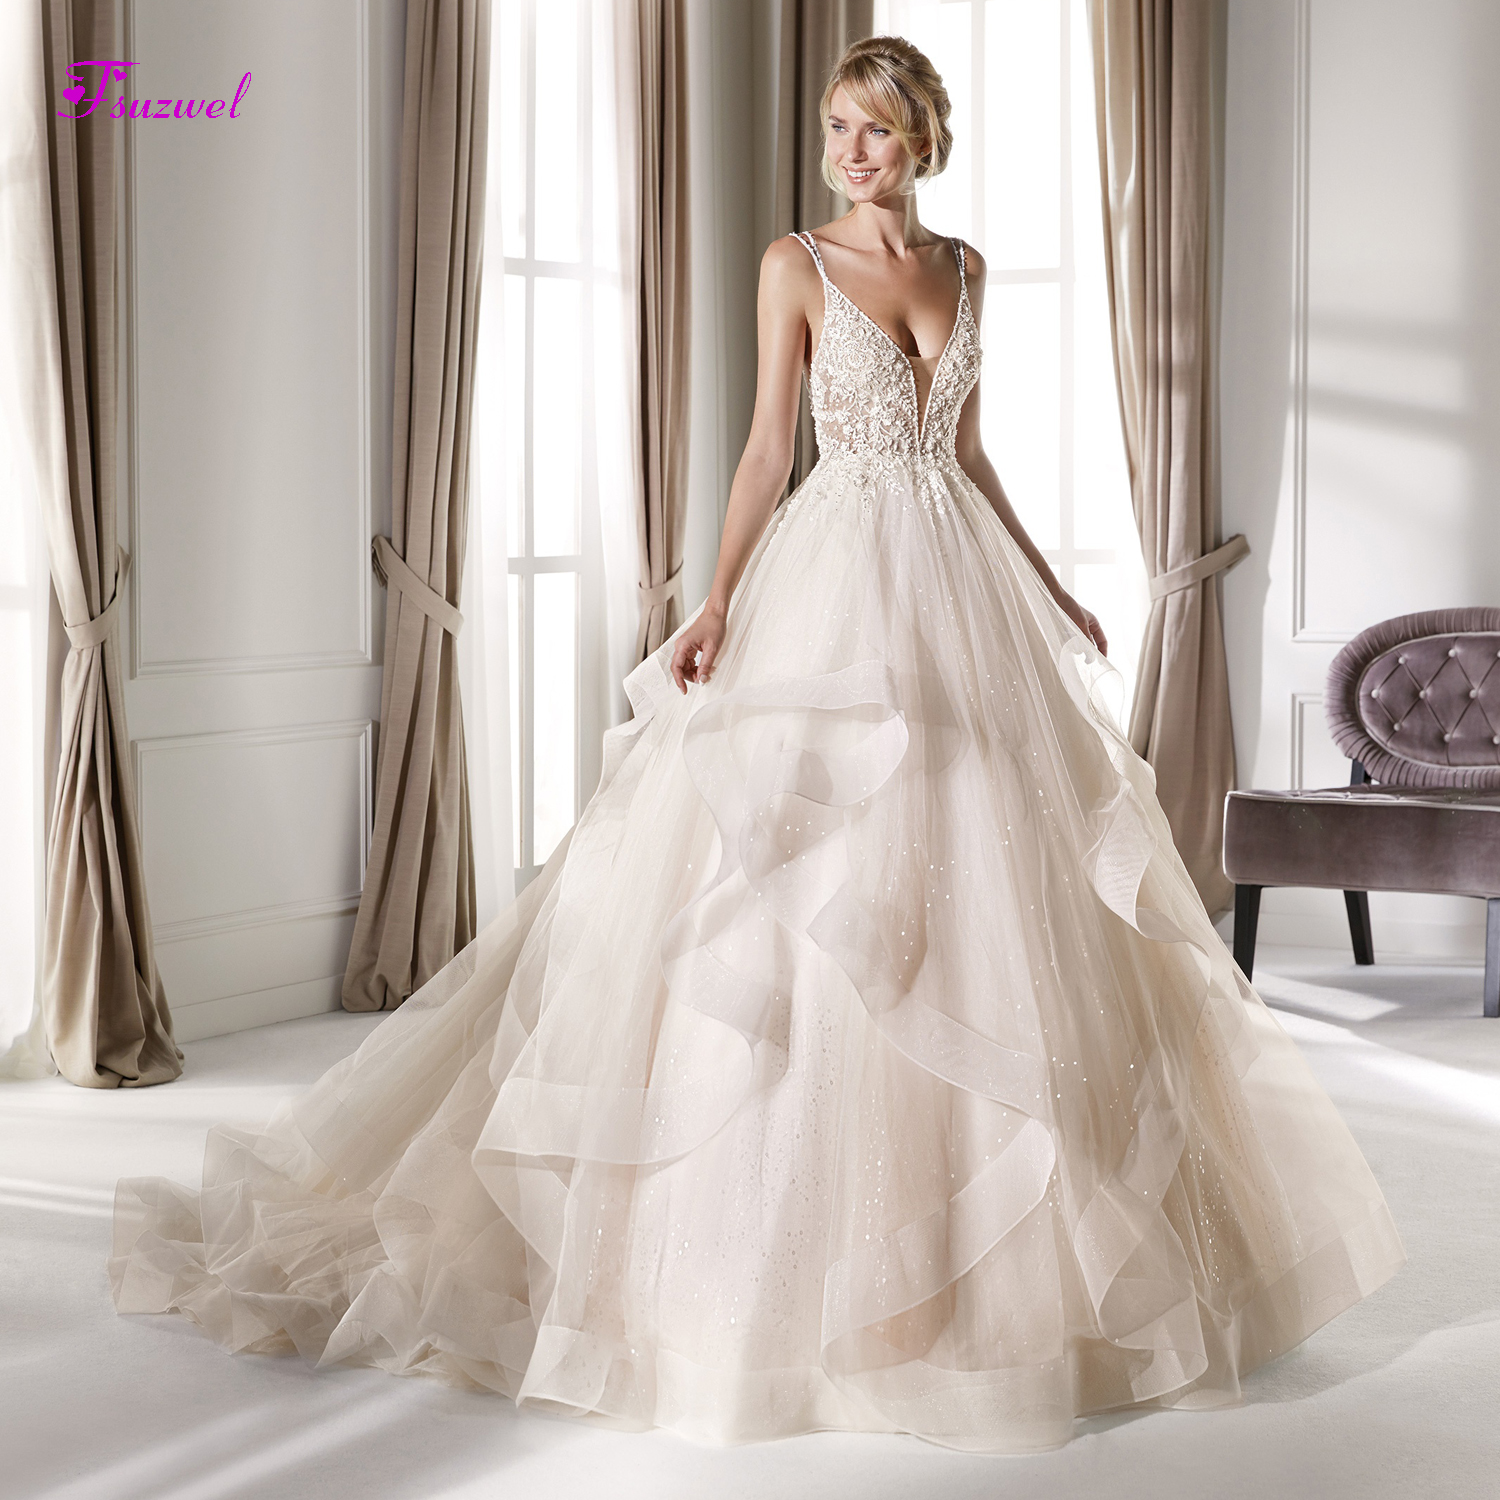 Fsuzwel Sexy Sweetheart Neck Backless A-Line Wedding Dresses 2019 Luxury Spaghetti Straps Beaded Appliques Bridal Gown Plus Size